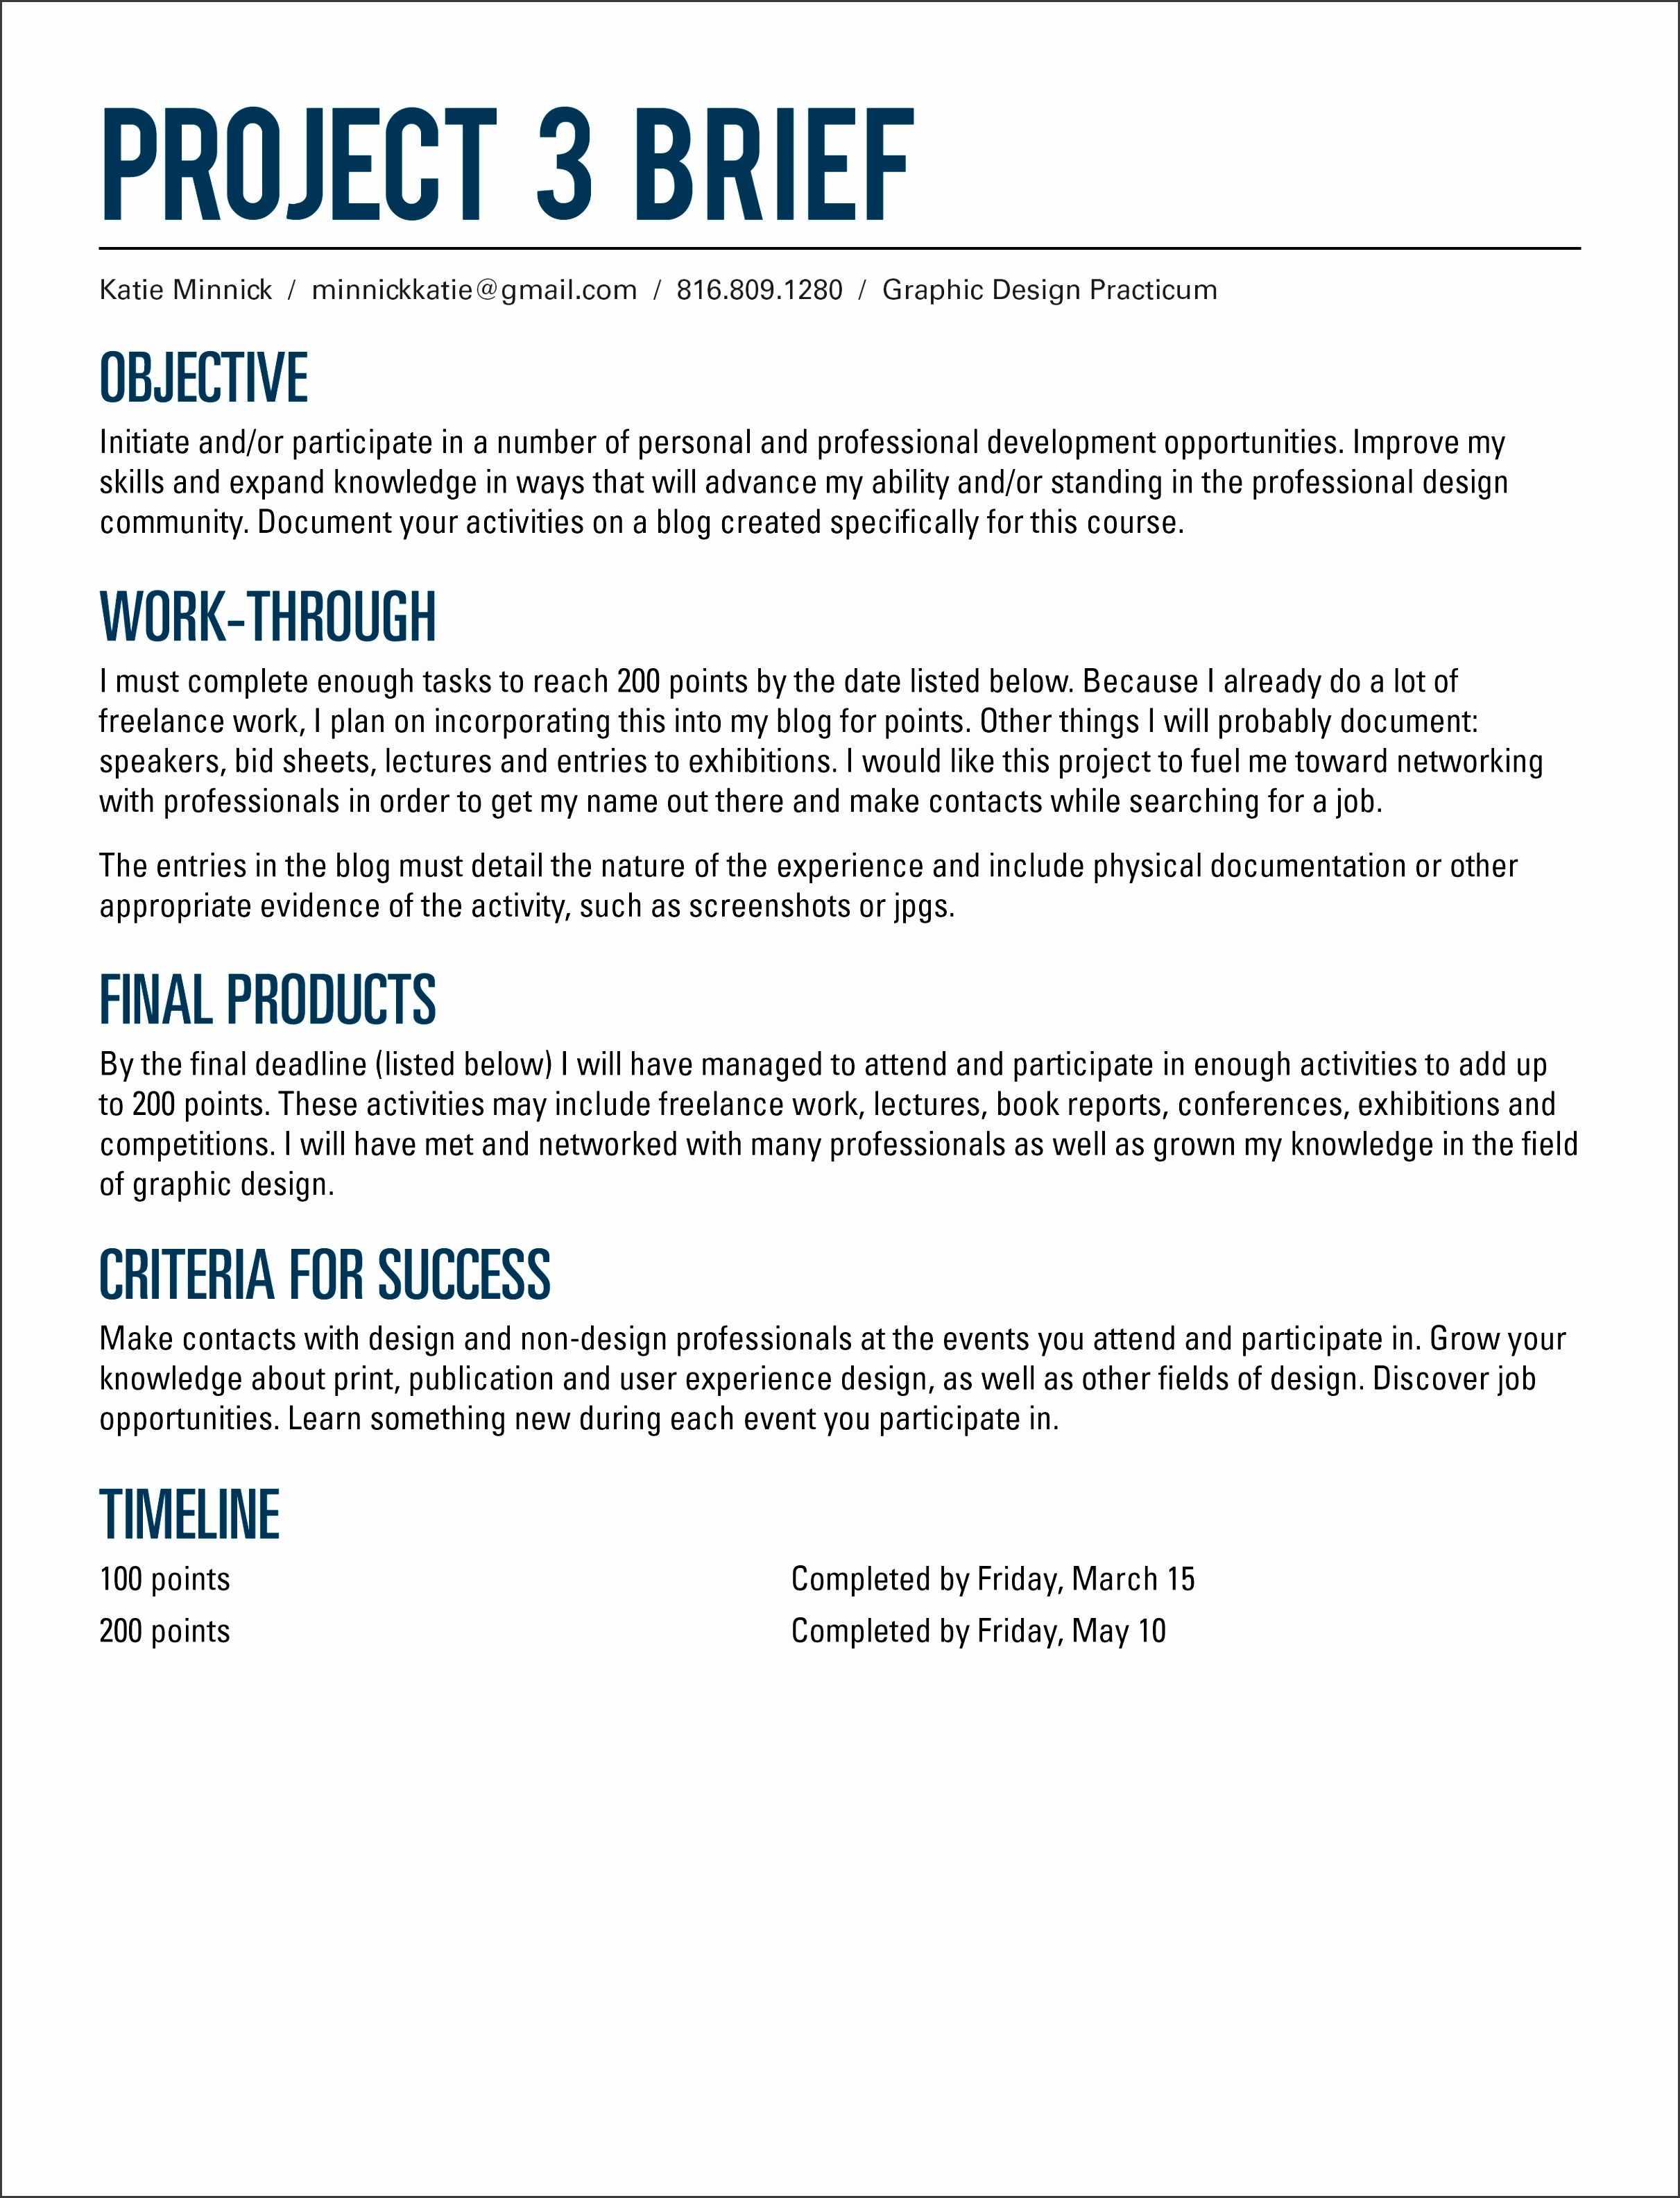 Project 3 Brief